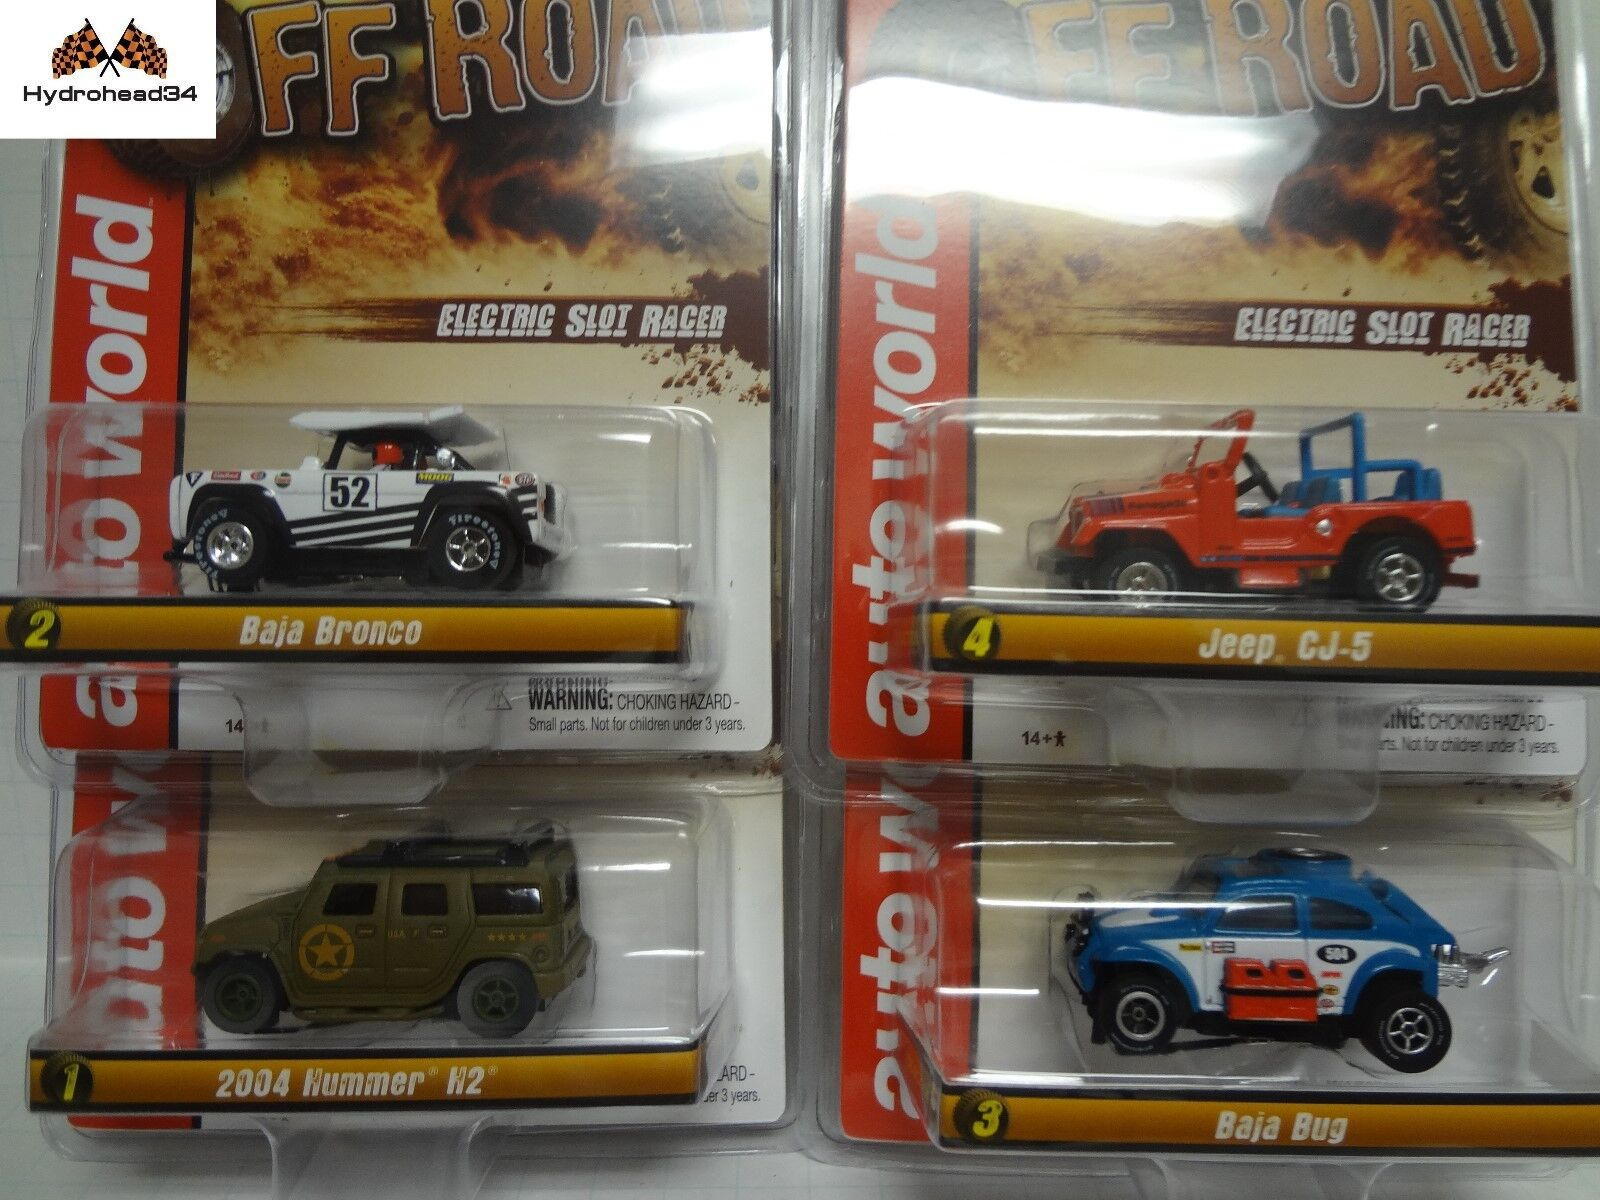 Auto World Off-Road XTraction Electric Slotcar Set2 of 4 R24 SC335 - 18ZH